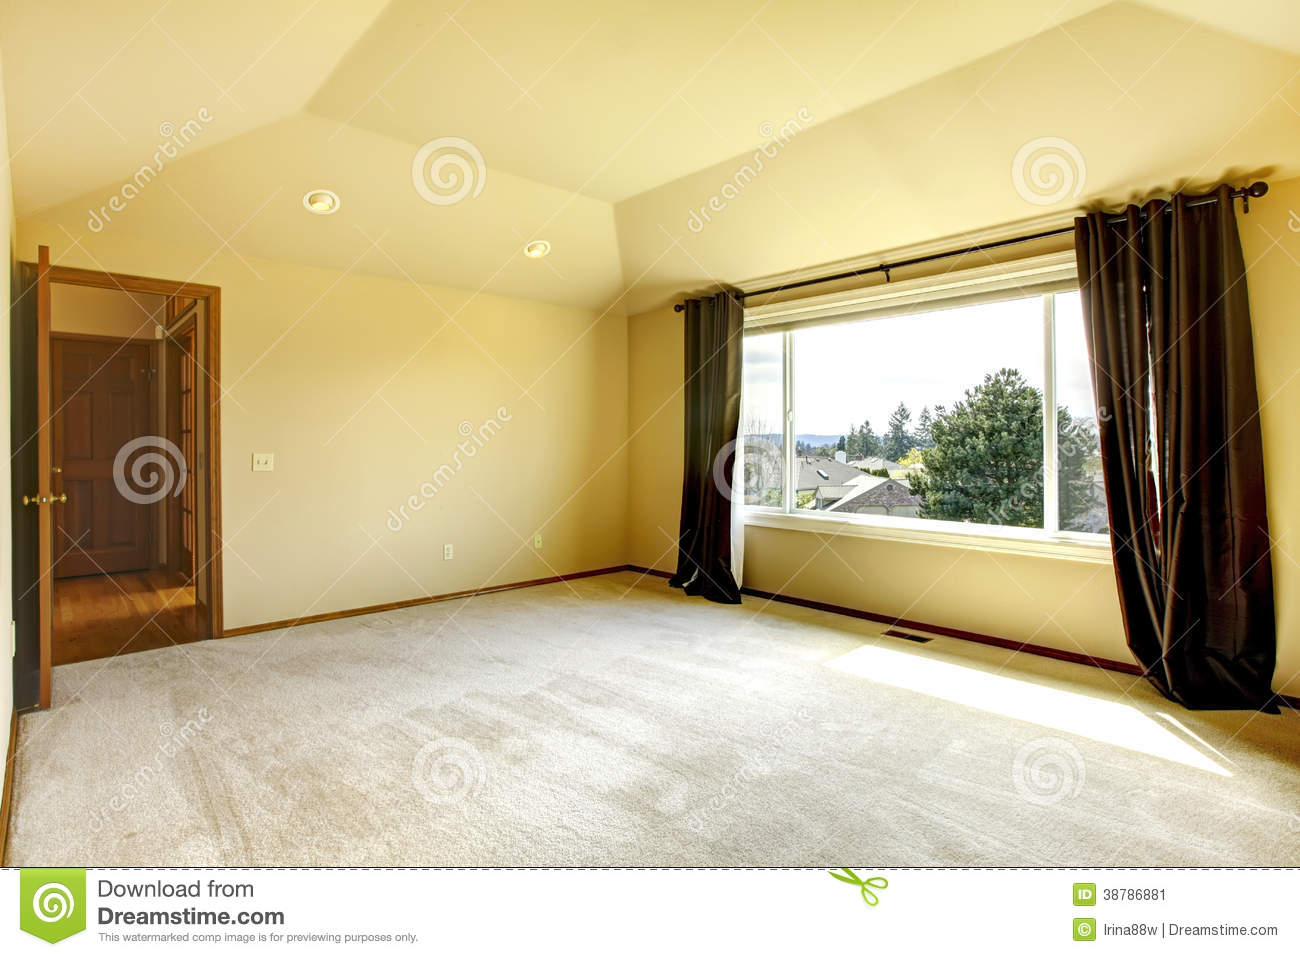 Empty Bedroom Stock Photo - Image: 38786881